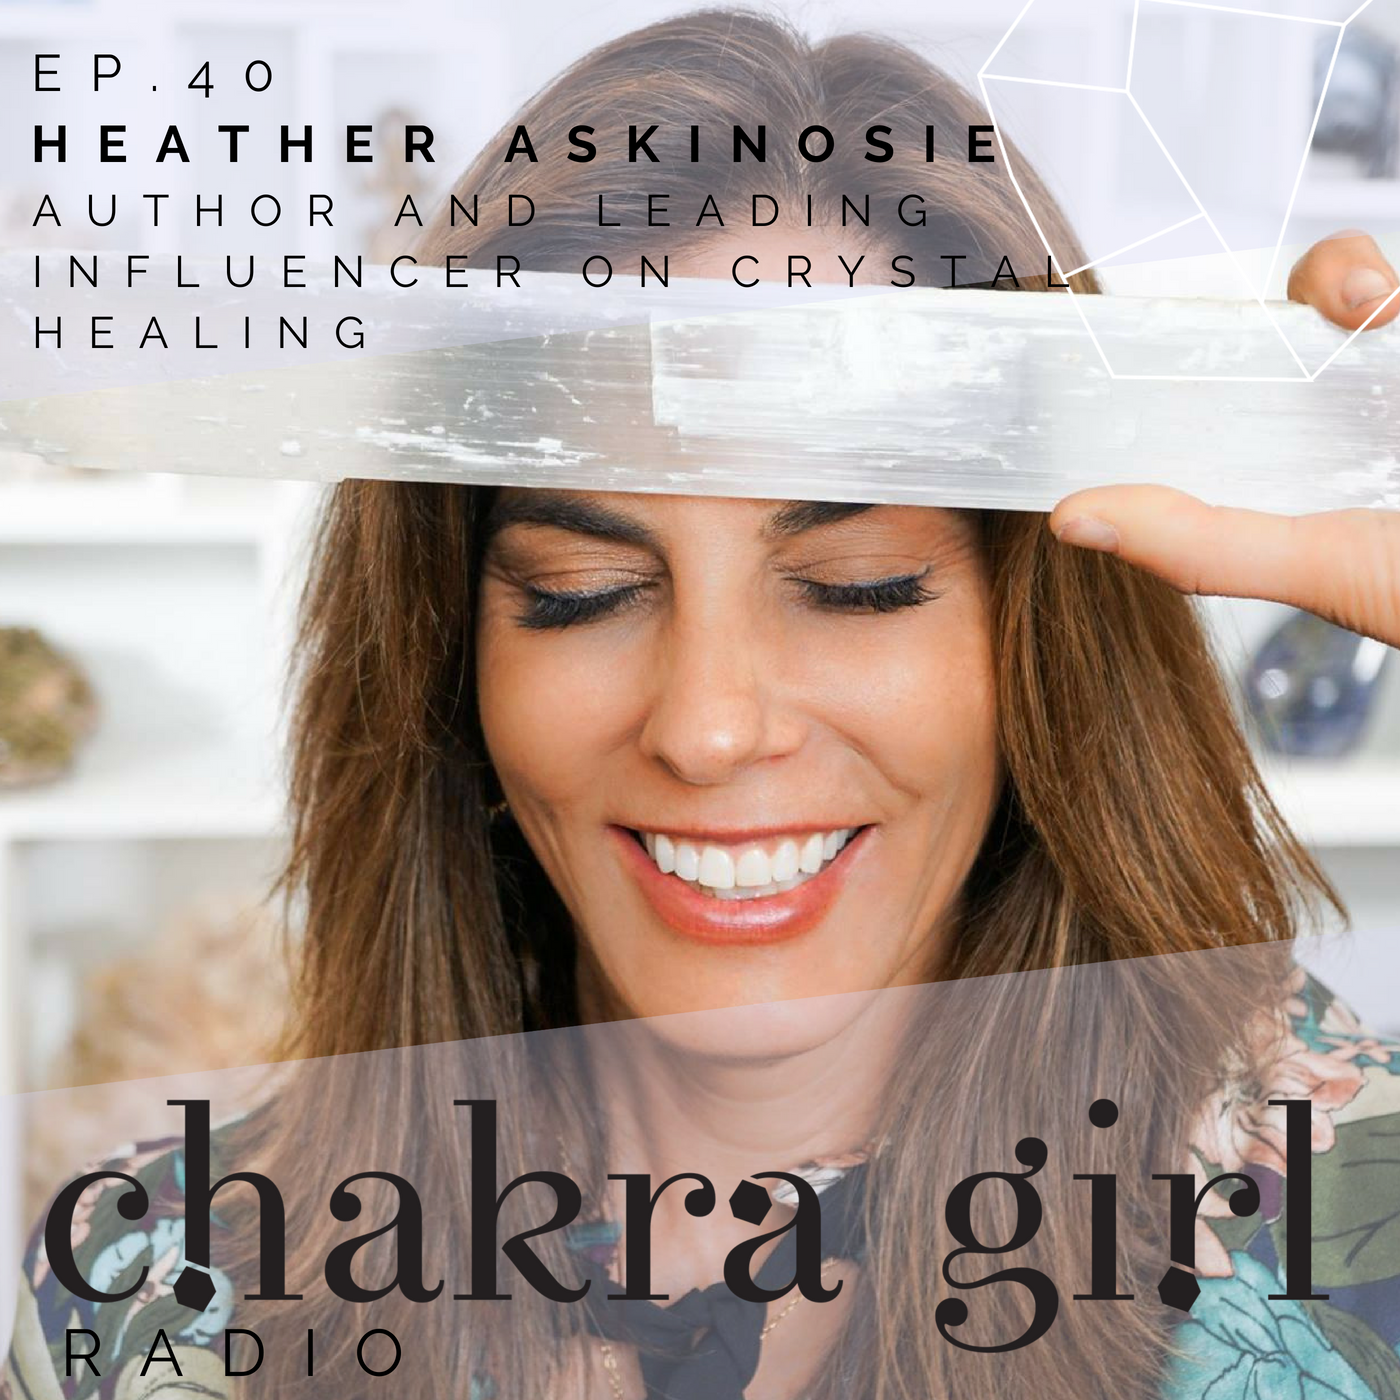 Chakra Girl Radio Heather Askinosie